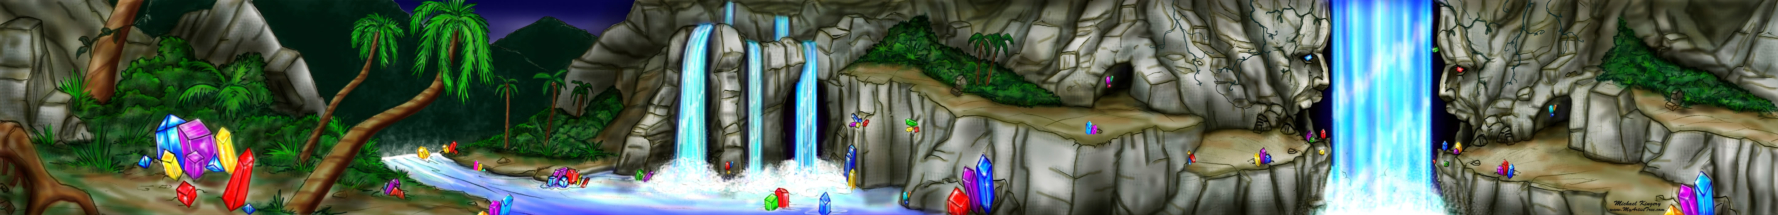 Fountains_Mural_7-08_color2